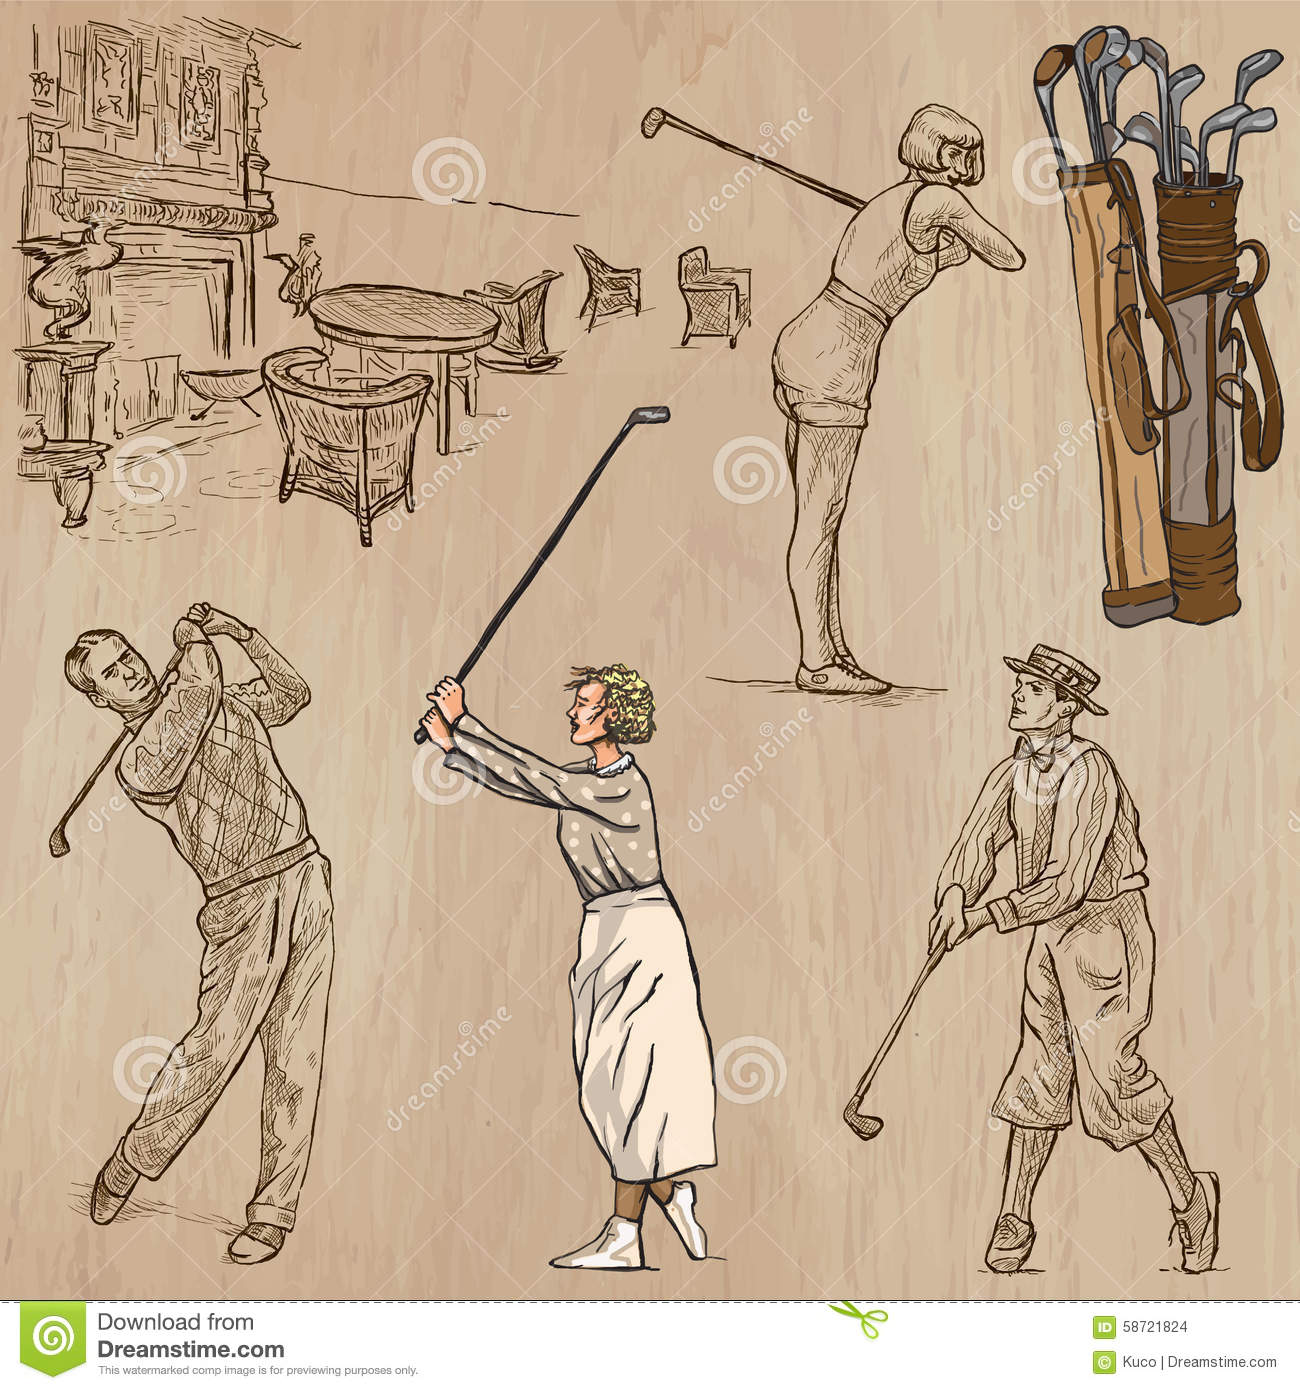 Vintage Golf Stock Images RoyaltyFree Images amp Vectors